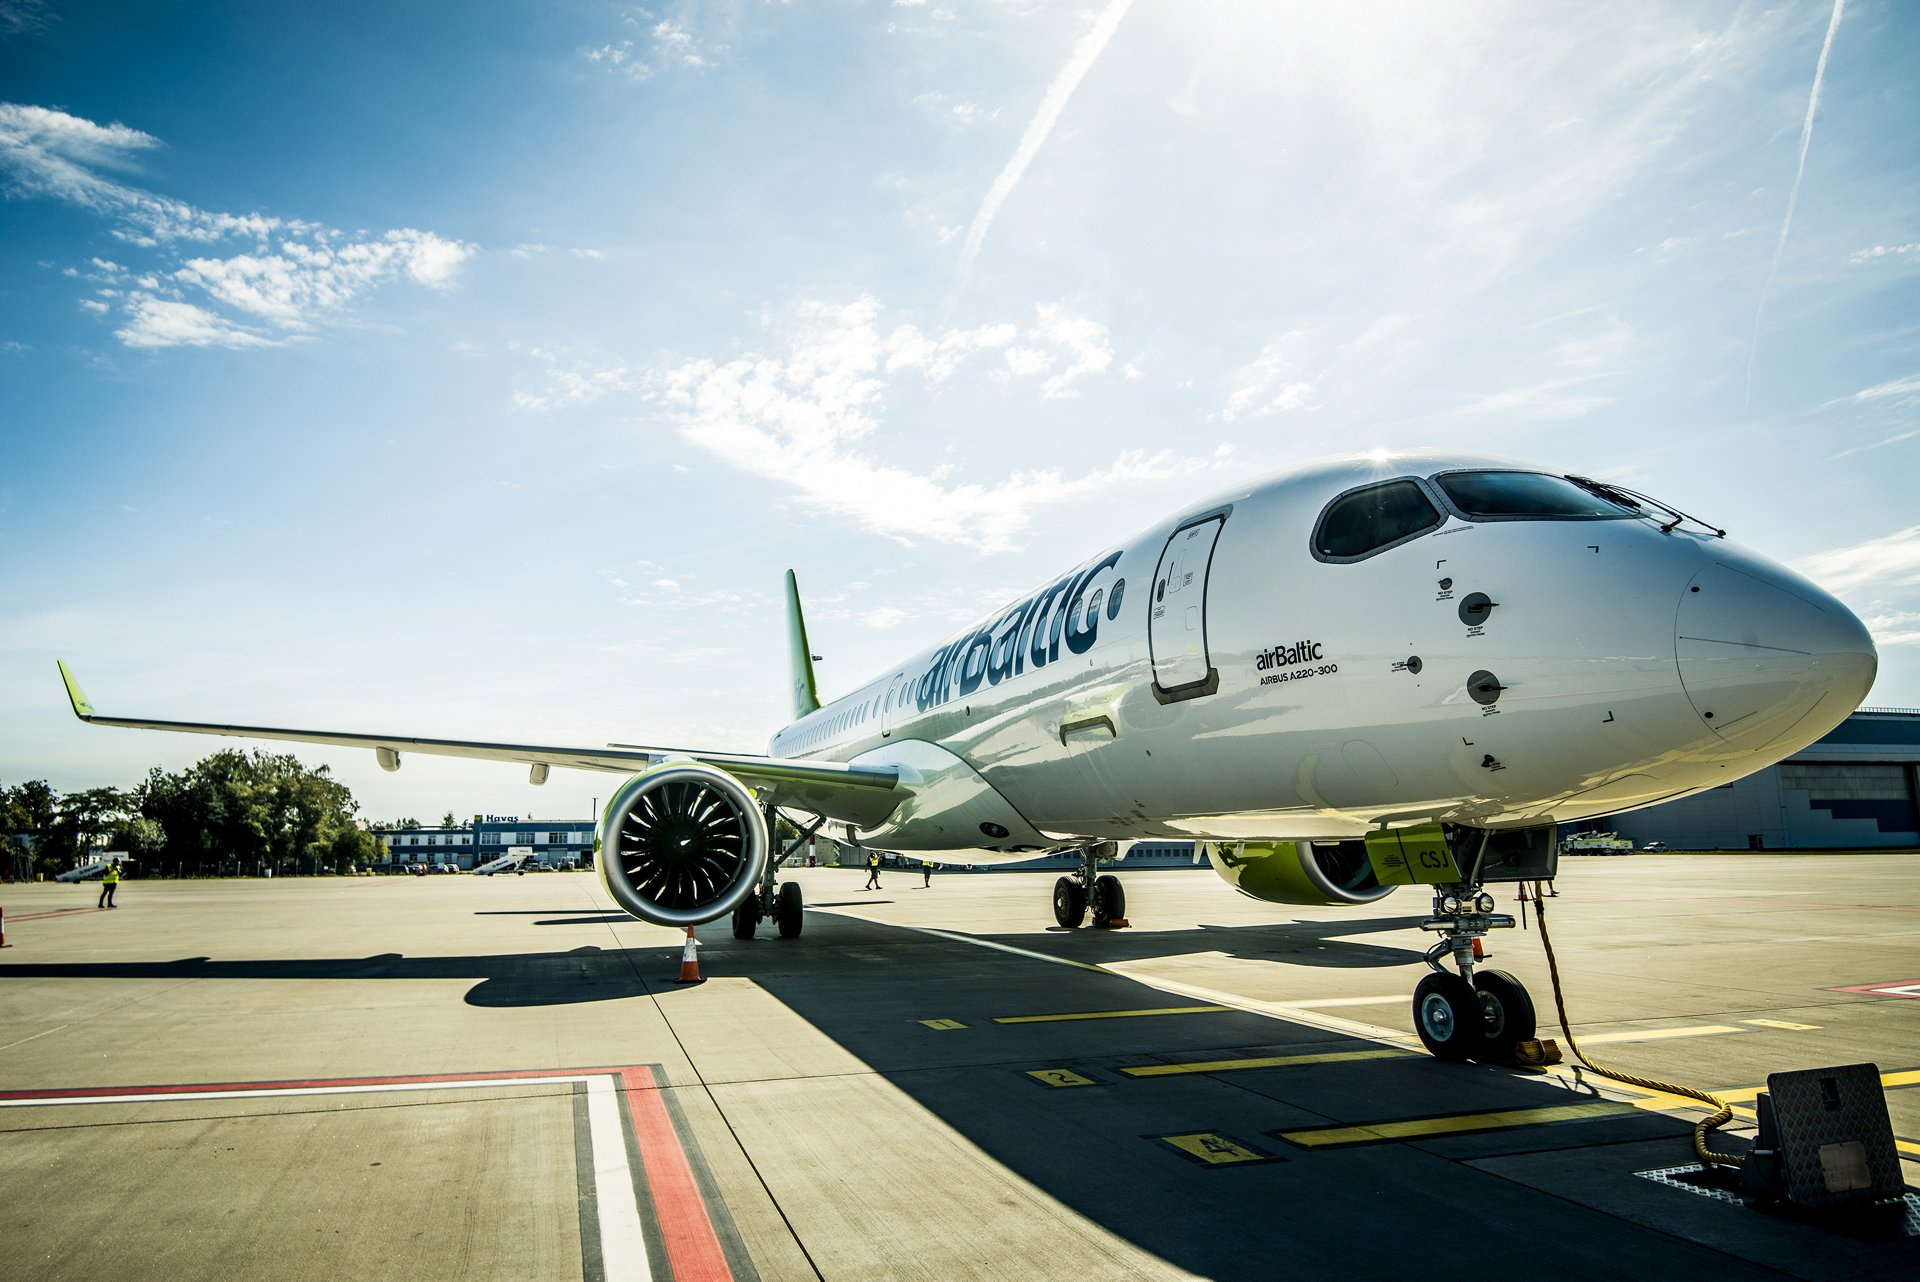 Airbus' A220-300 world demonstration tour, which will utilize an aircraft operated by airBaltic, will begin with a 5 November visit to China's Zhuhai airshow